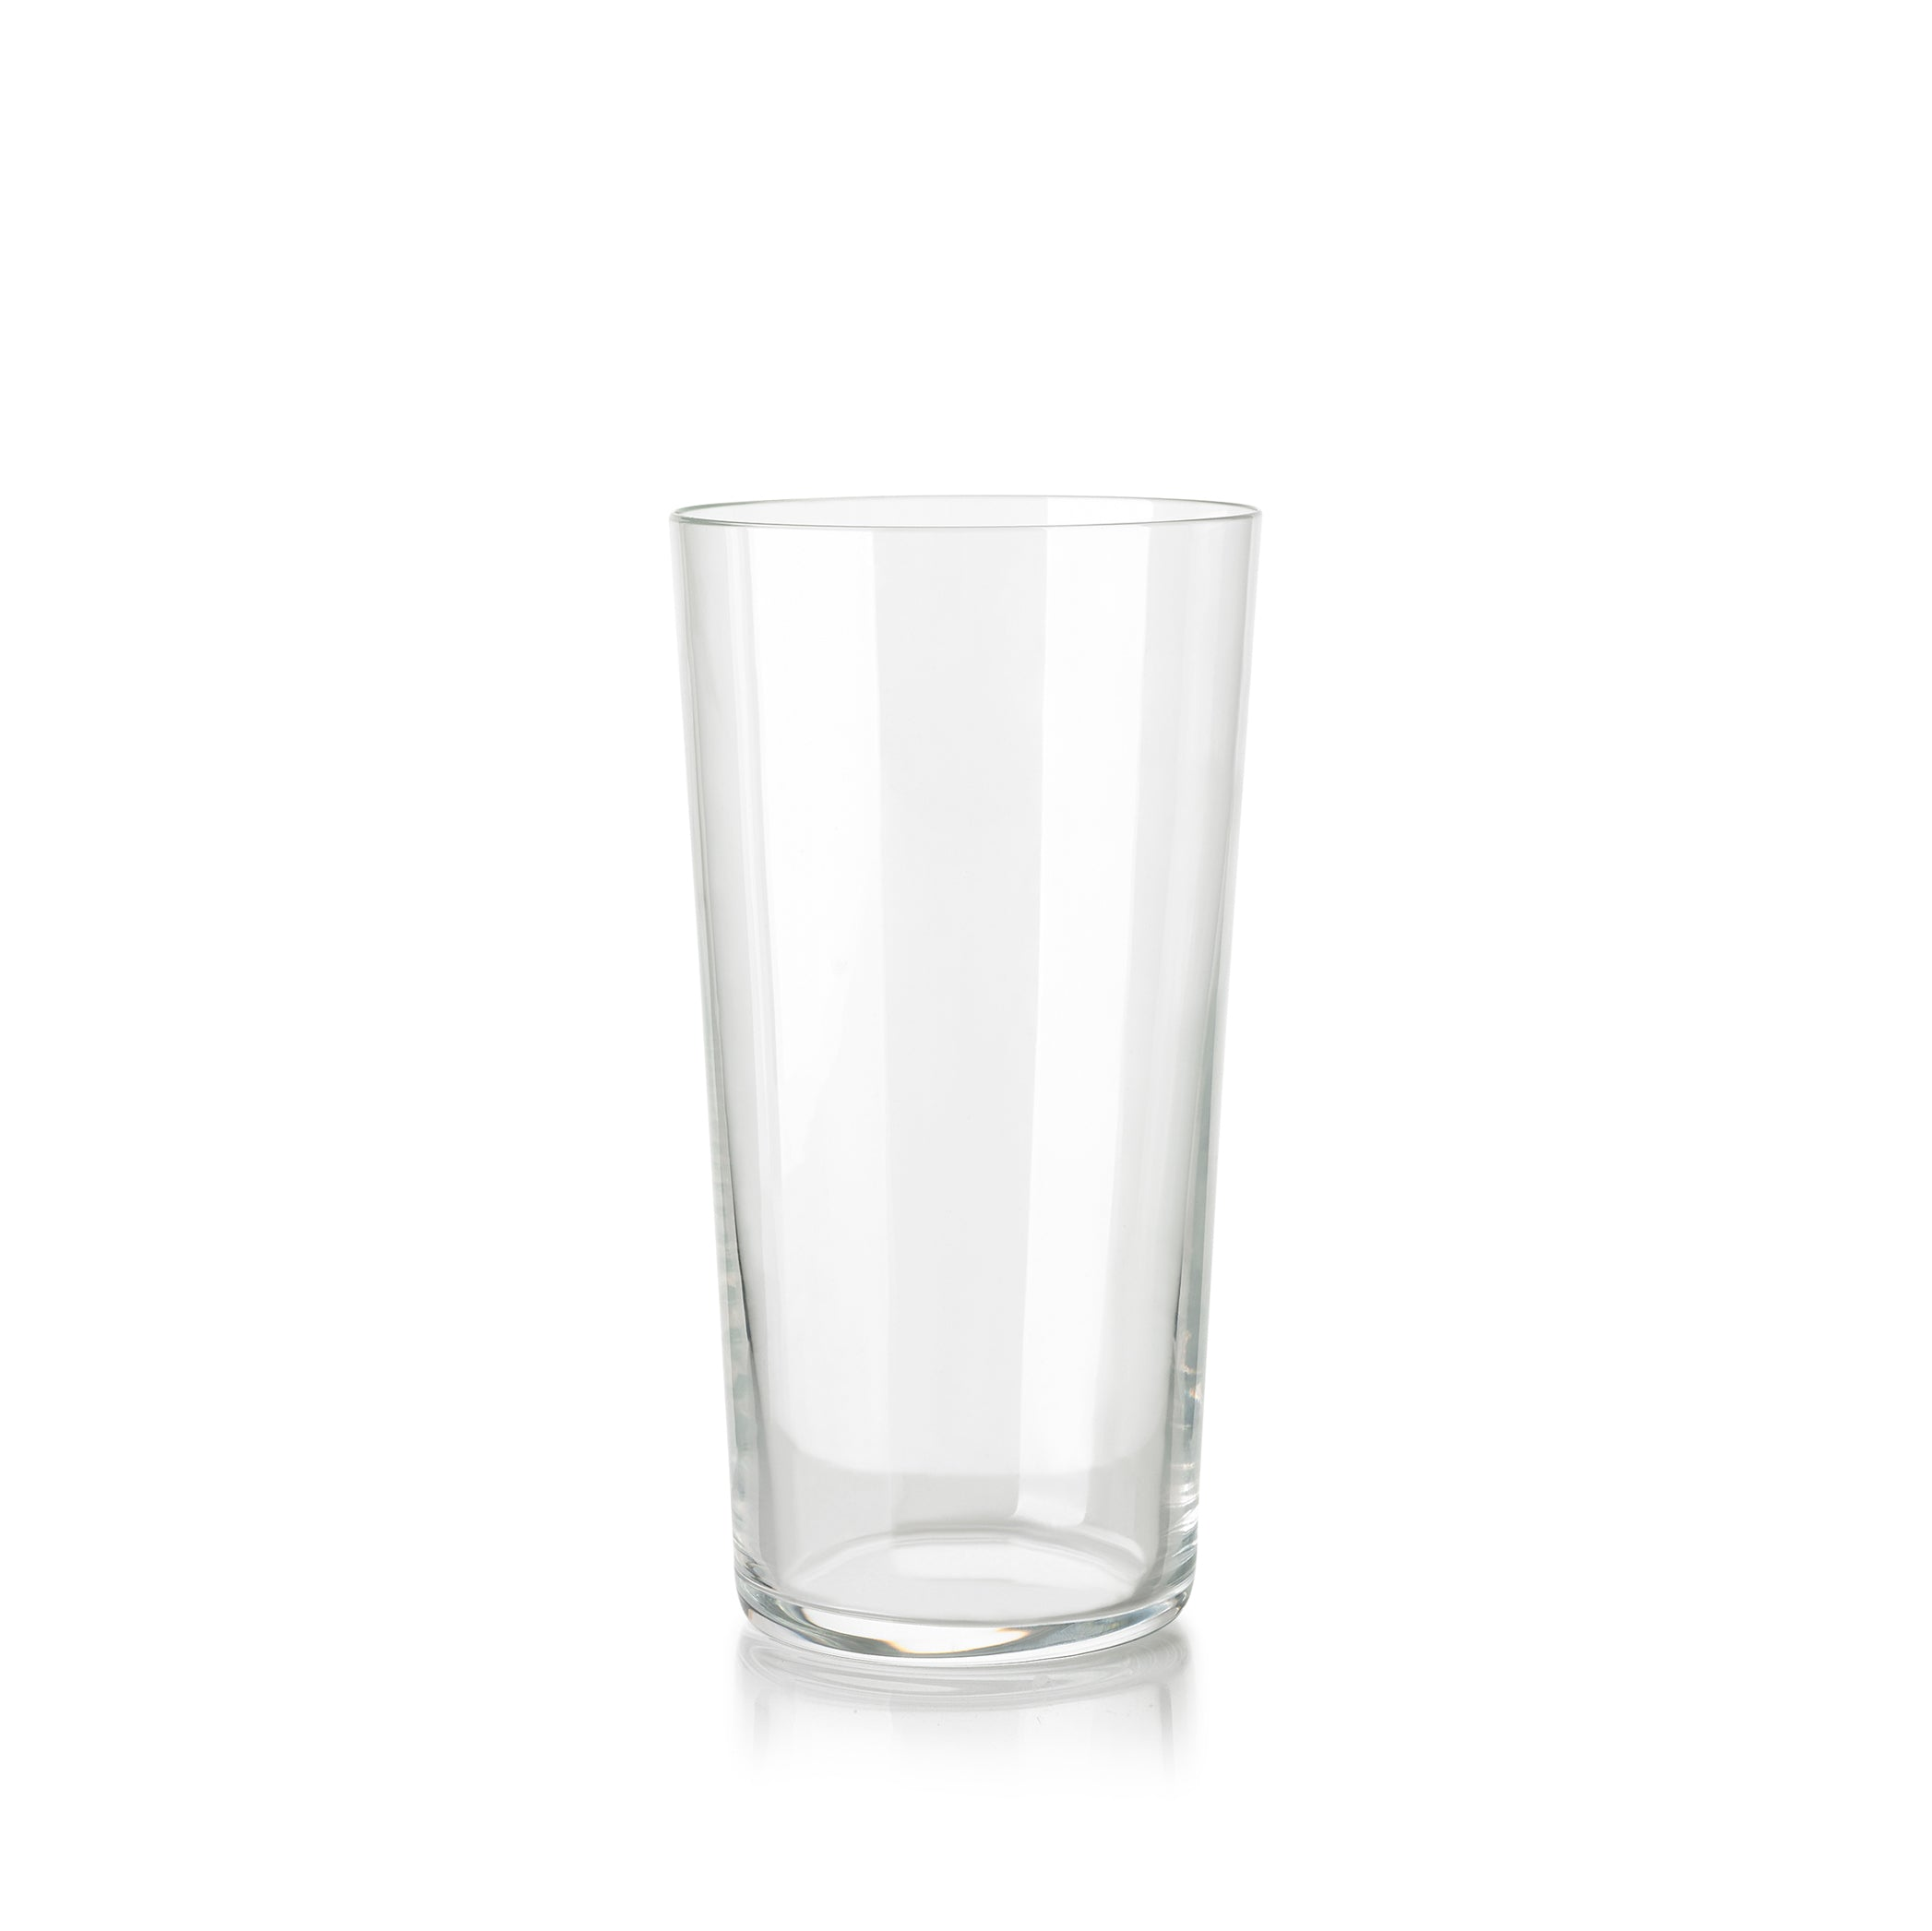 S&B Highball Glass, 550ml